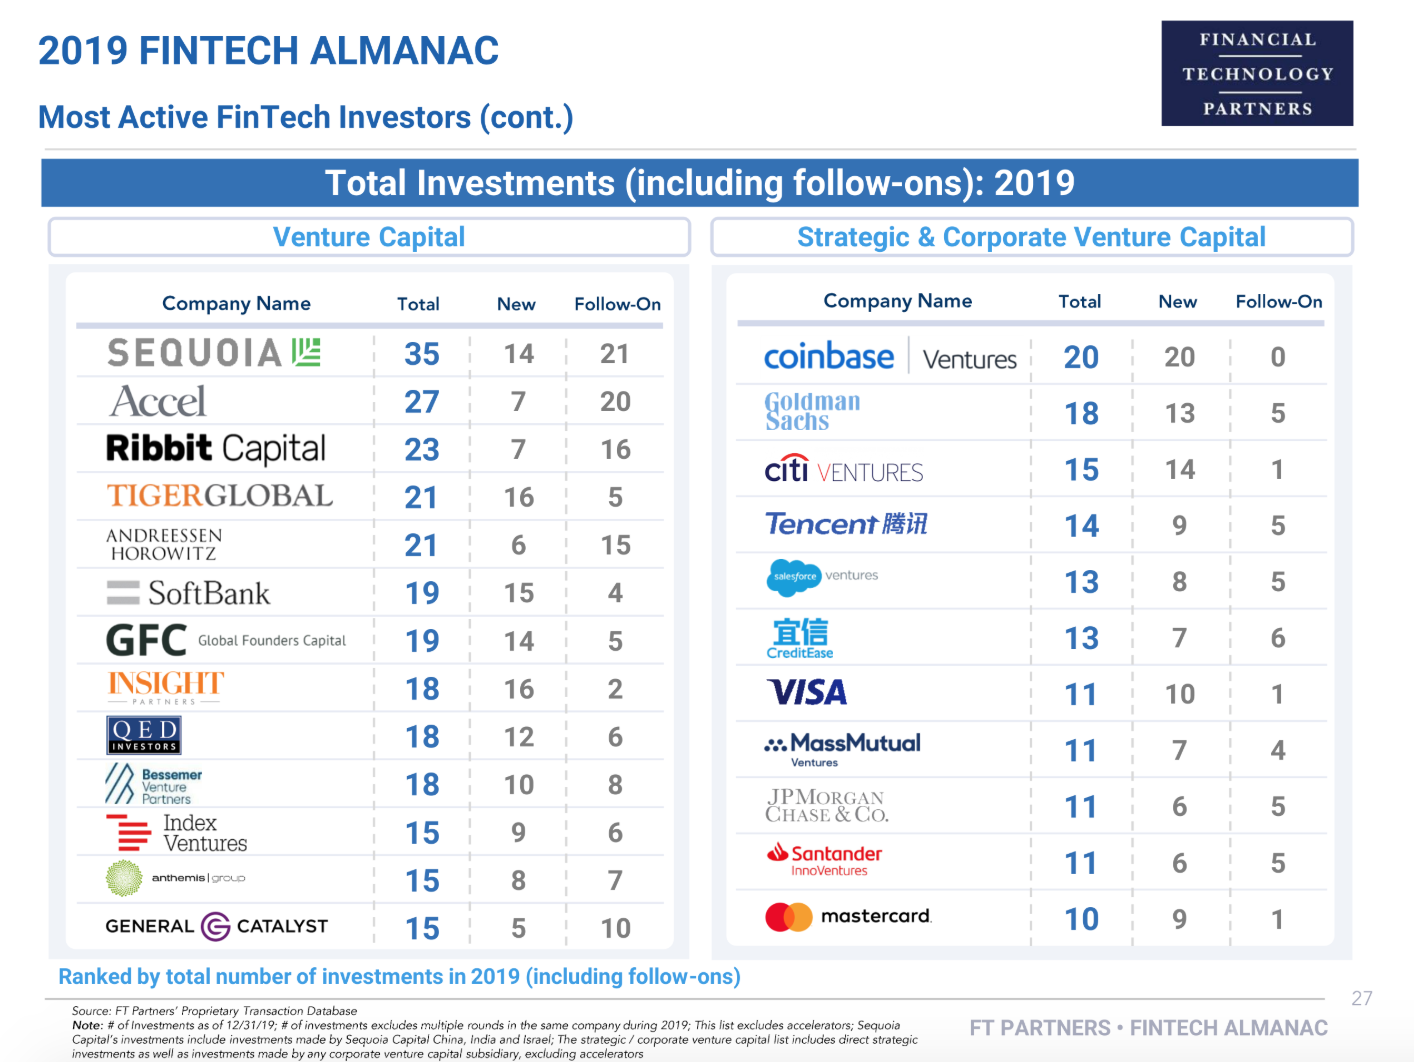 Most active fintech investors (follow-ons included) of 2019, 2019 Fintech Almanac, Financial Technology Partners, February 2020